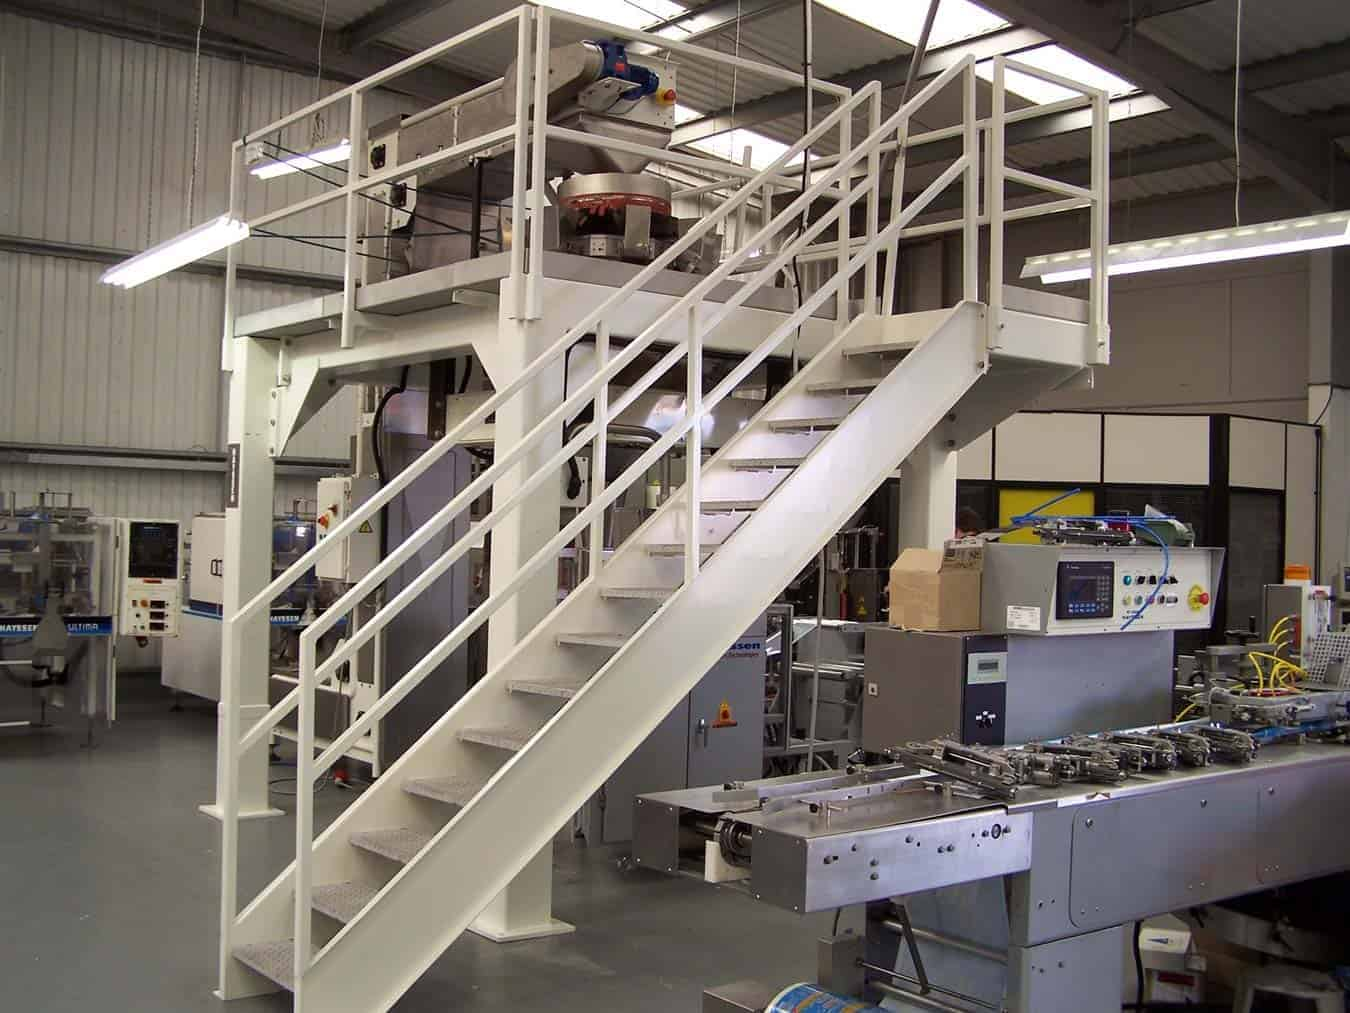 en 1090 structural steel mezzanine floor food conveyor manufacturers Platform & Mezzanine Wrightfield